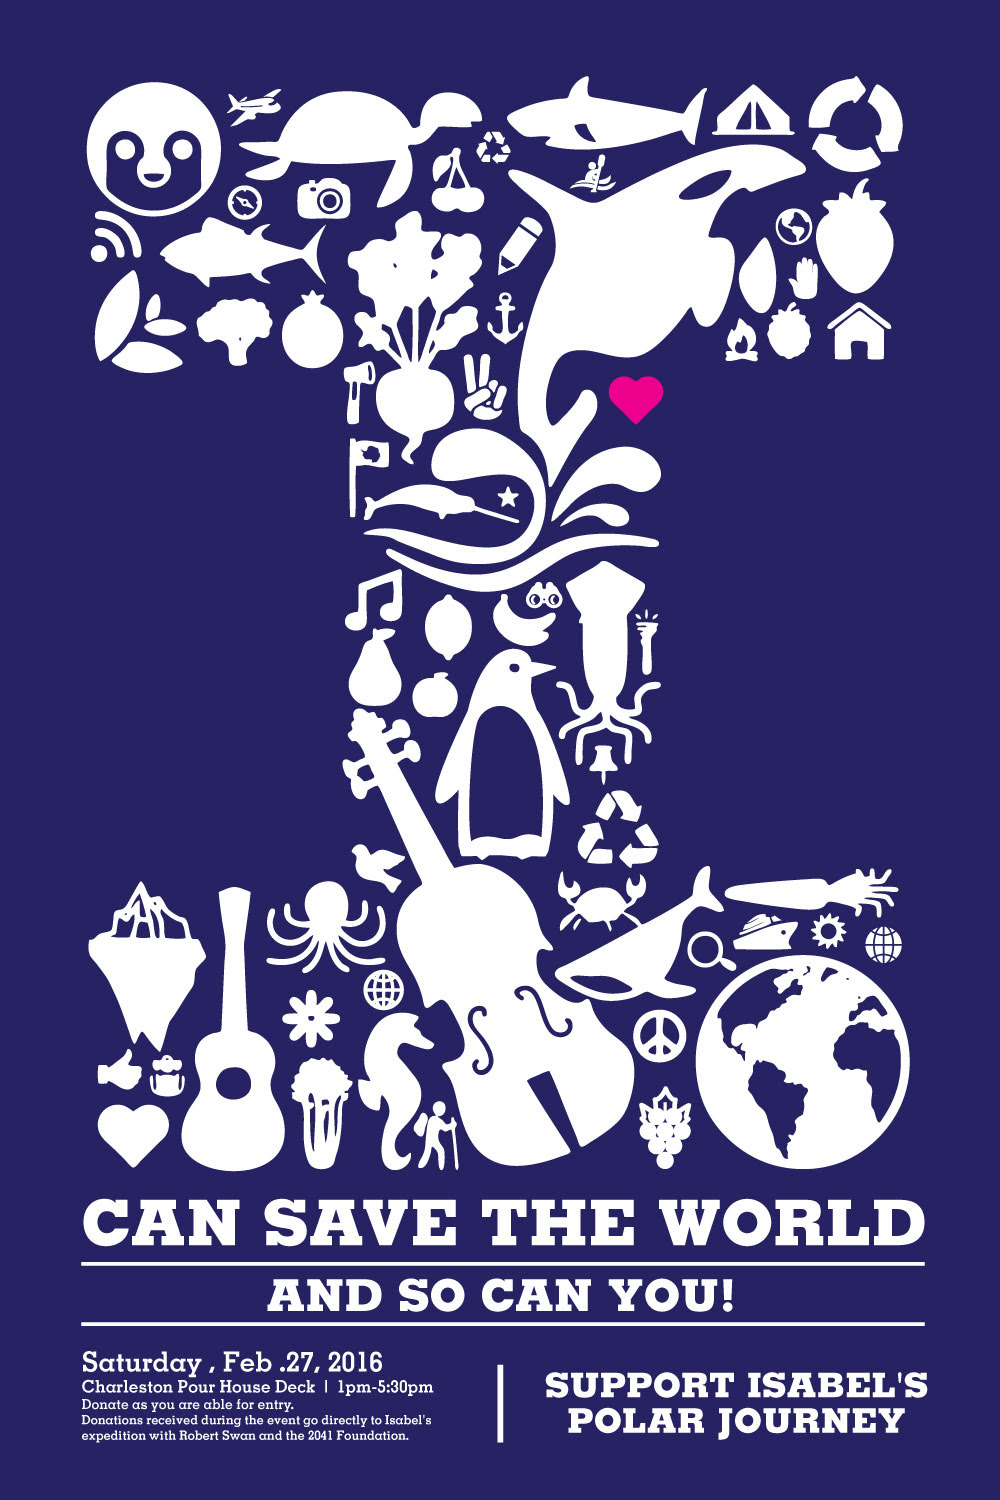 I Can Save The World Gil Shuler Graphic Design